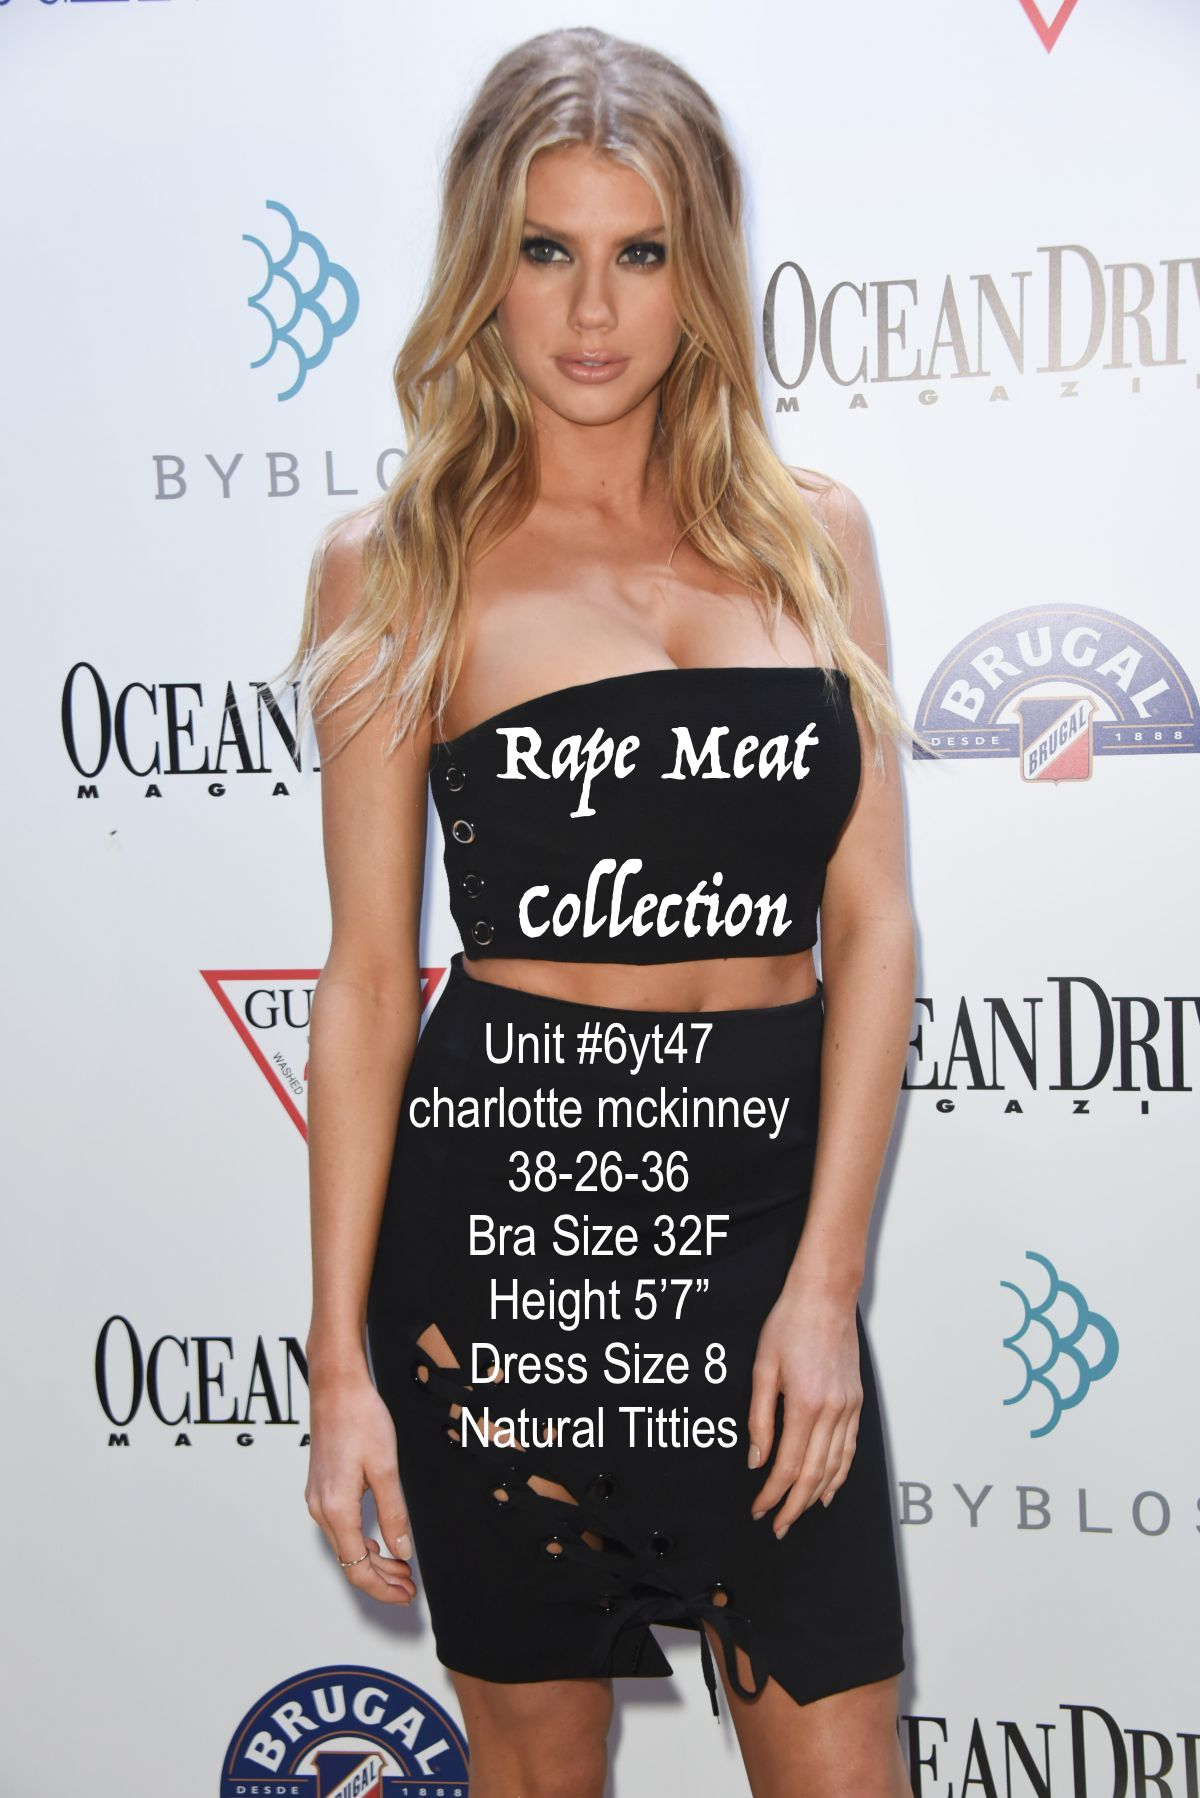 charlotte-mckinney-at-ocean-drive-magazine-celebration-party-in-miami-02-15-2017_1.jpg